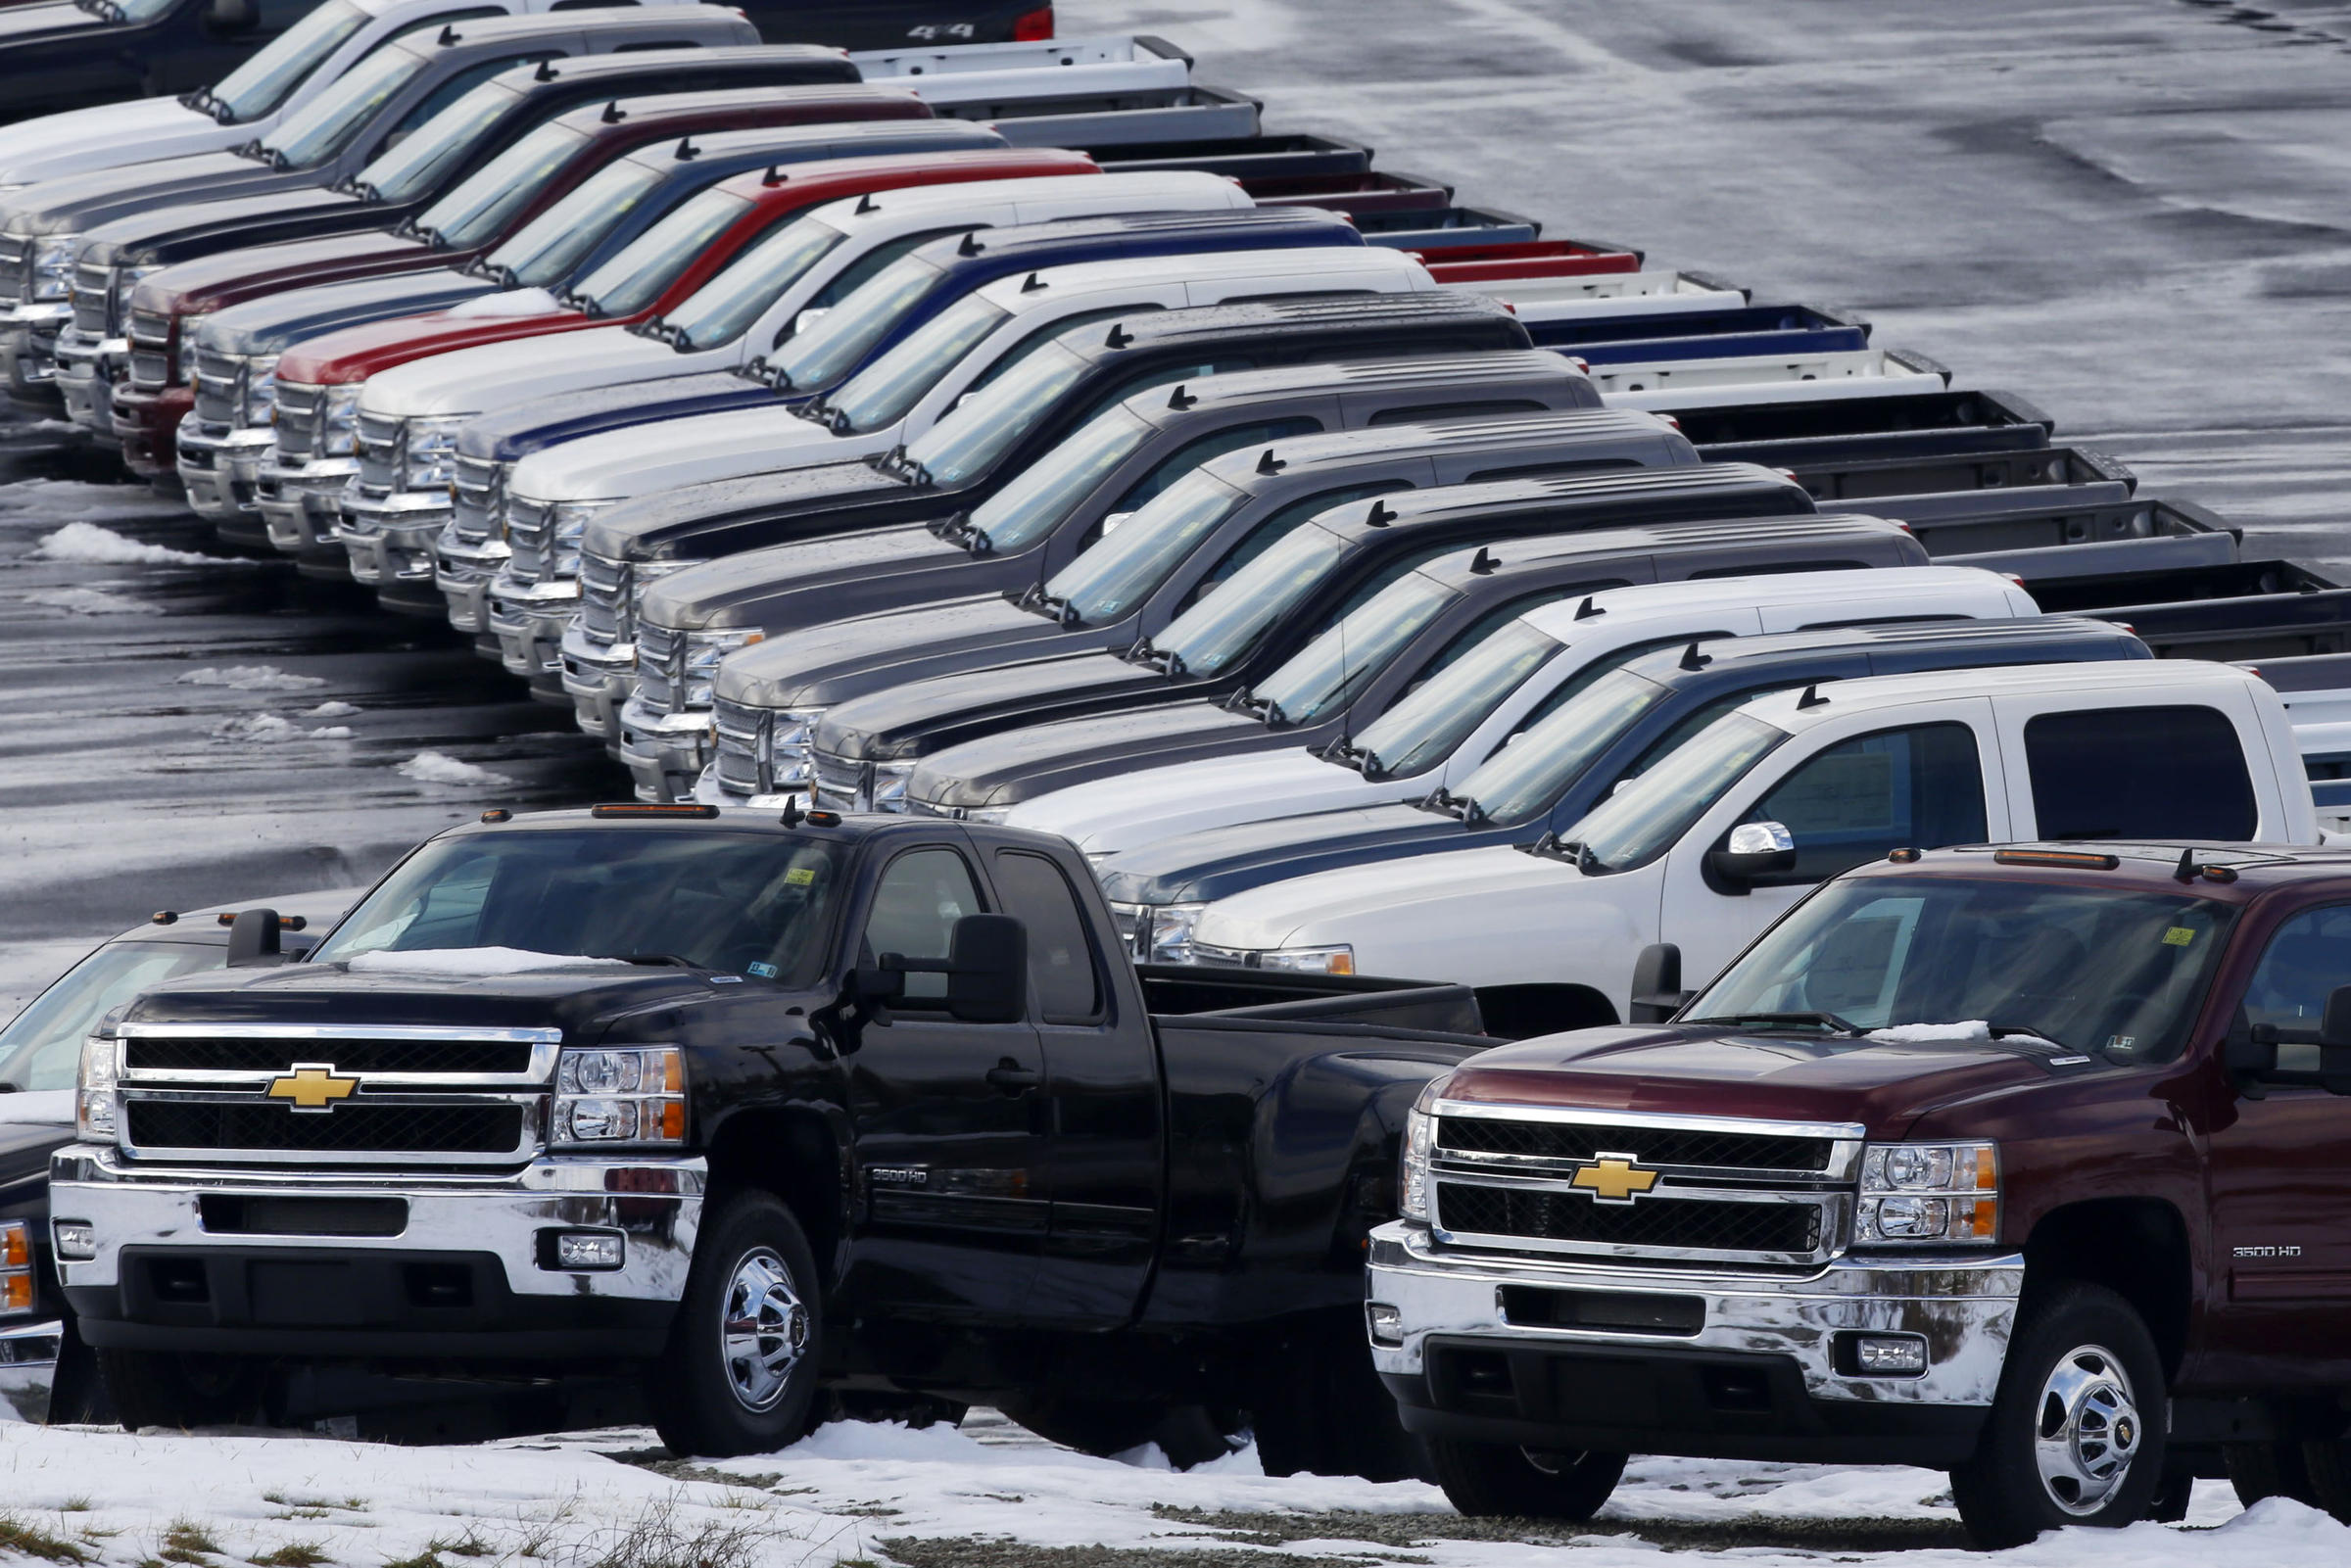 Chevy trucks line the lot of a dealer in Murrysville, Pa. Sales were up by double digits at Chrysler, General Motors and Ford last month.